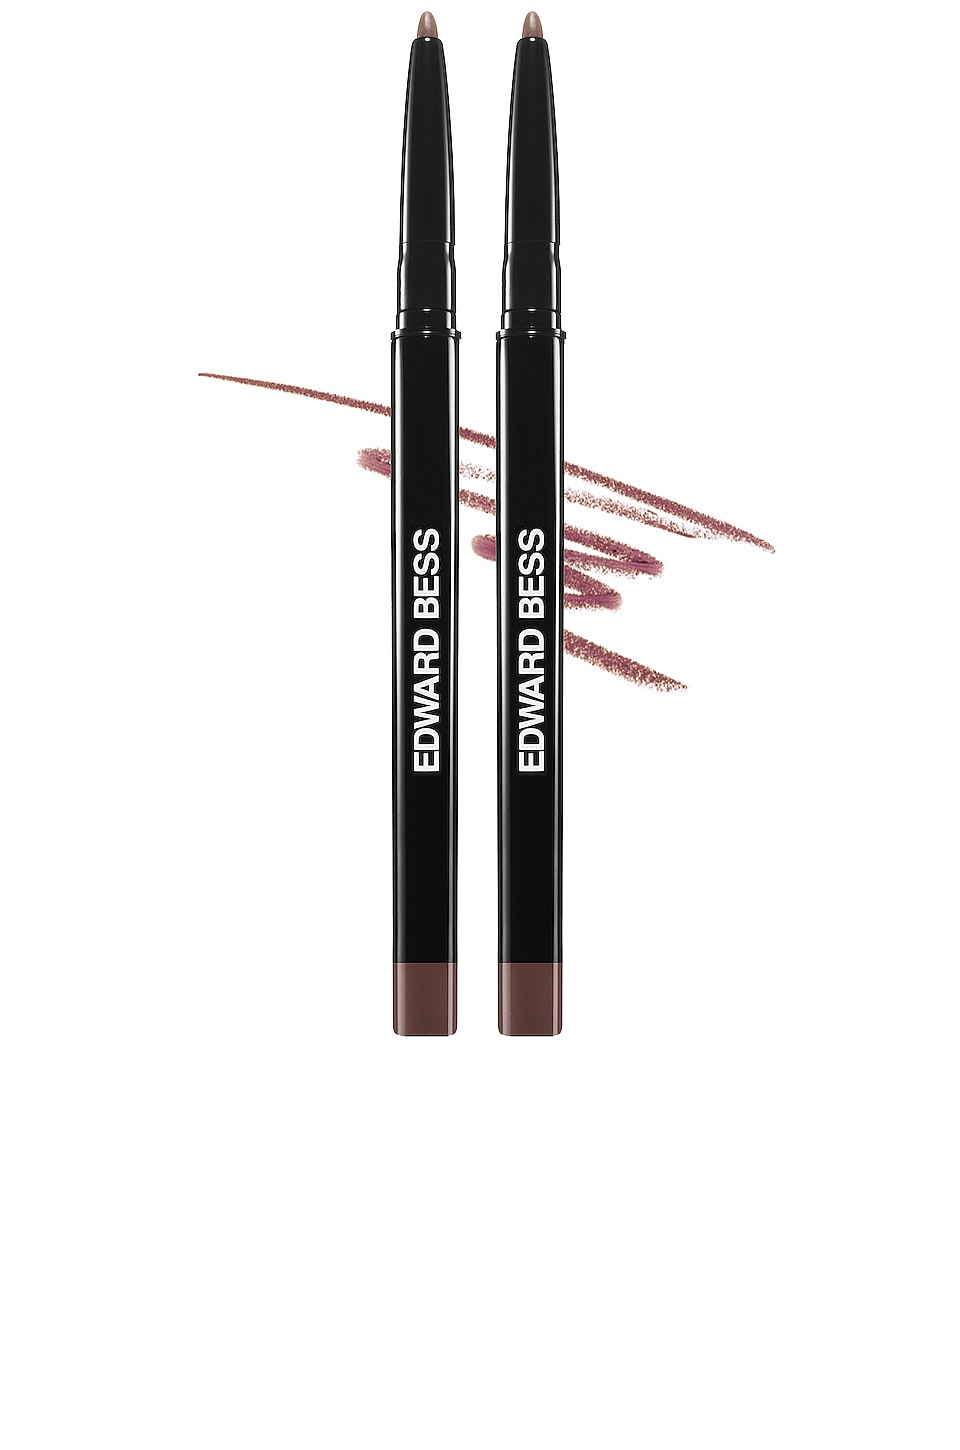 Edward Bess Defining Lip Liner in Natural